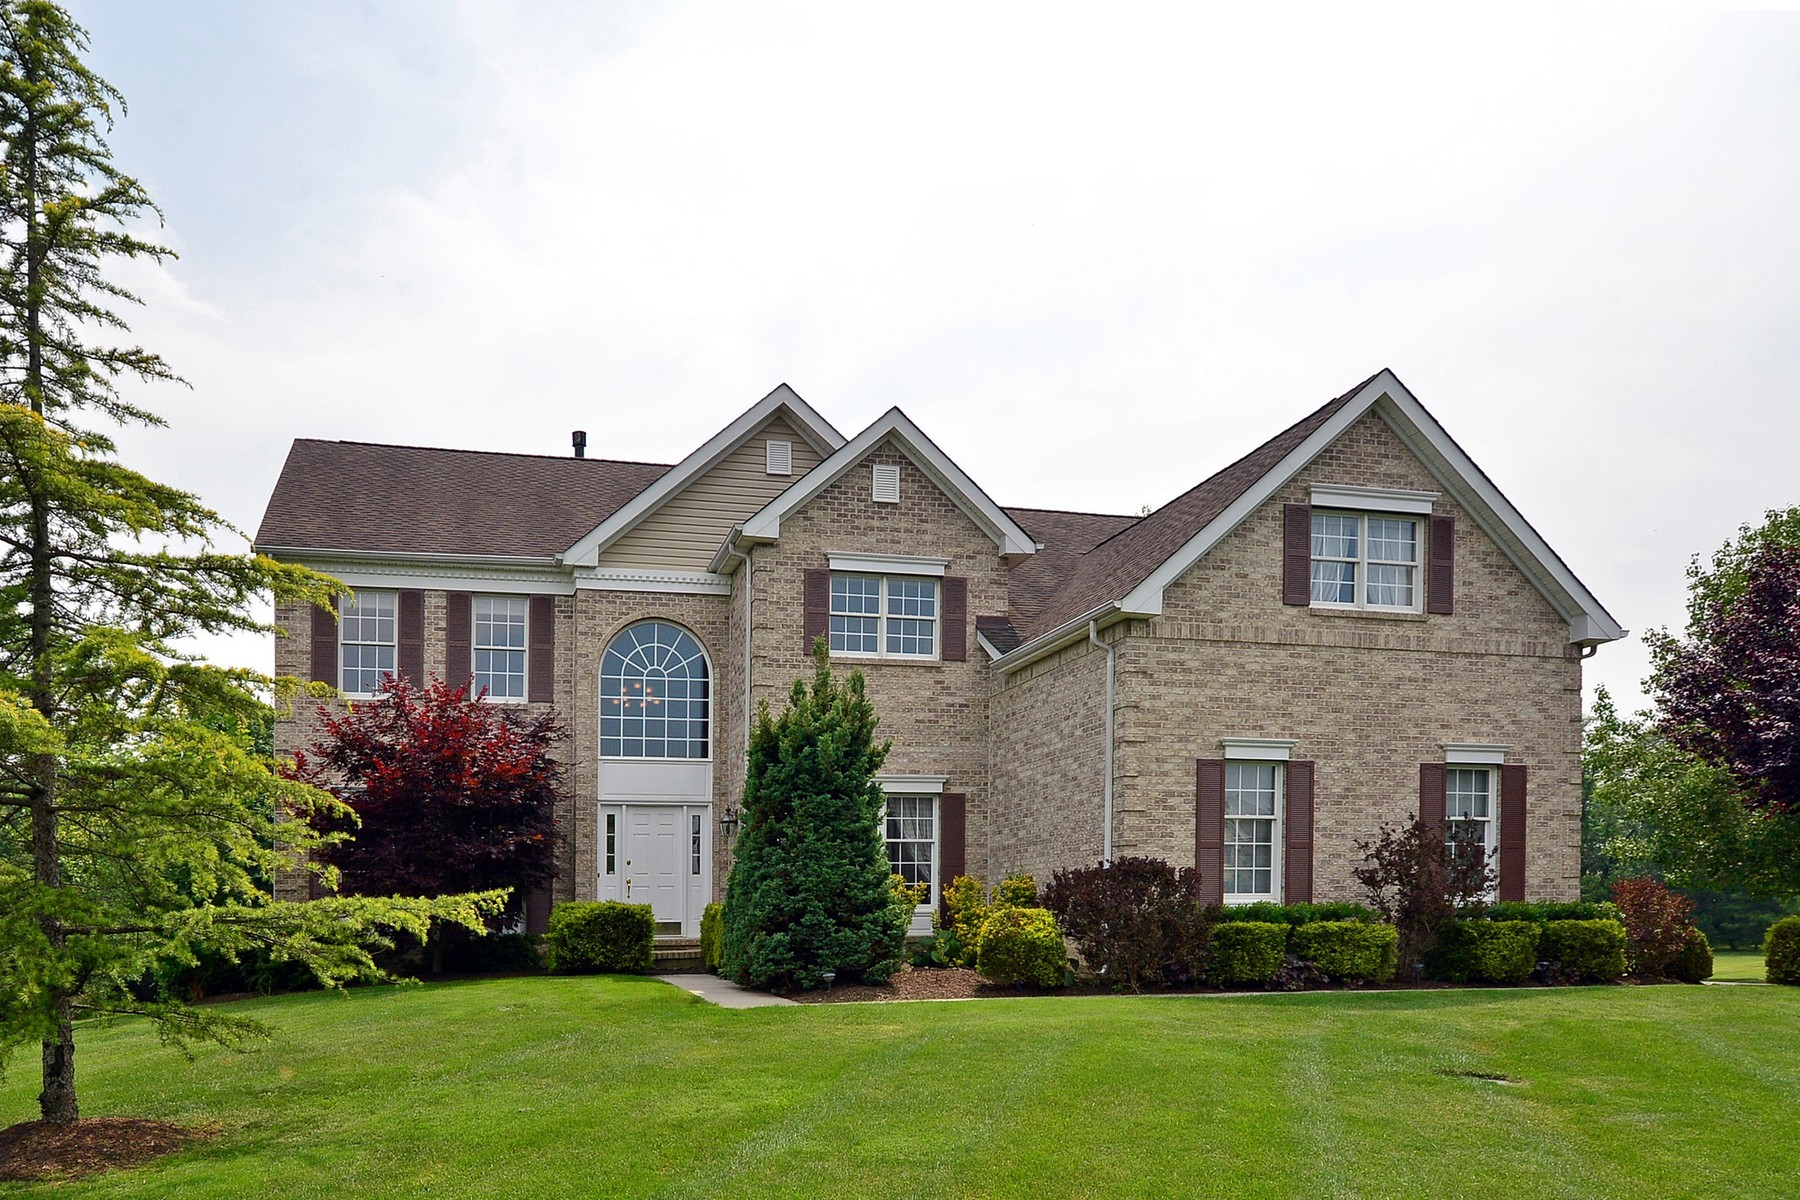 Single Family Home for Sale at Extraordinary Character 303 Peter Forman Drive Freehold, New Jersey 07728 United States